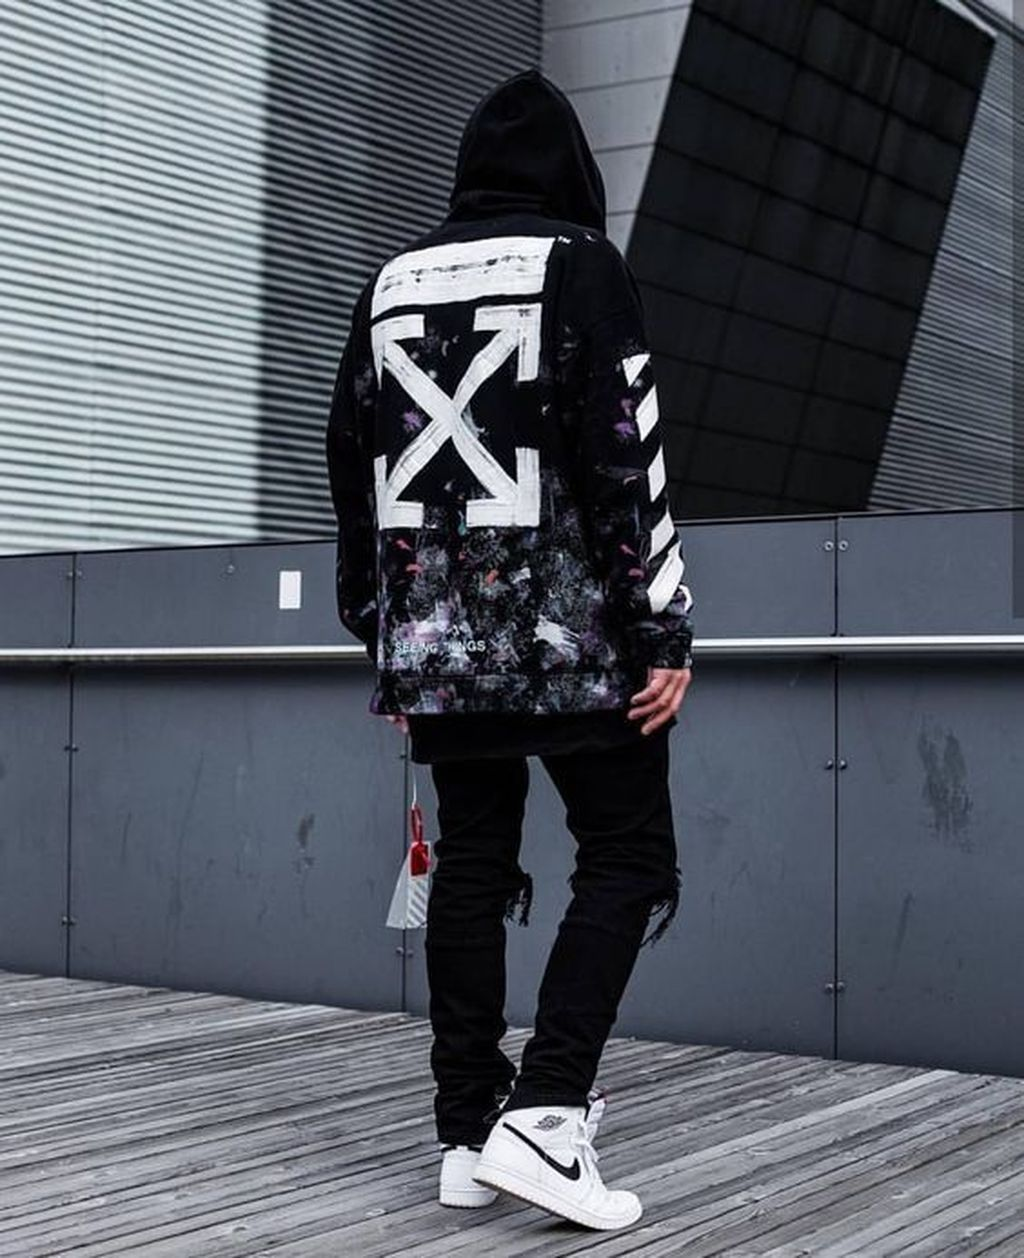 47 Astonishing Winter White Outfit Ideas Off White Fashion Off White Clothing Winter White Outfit